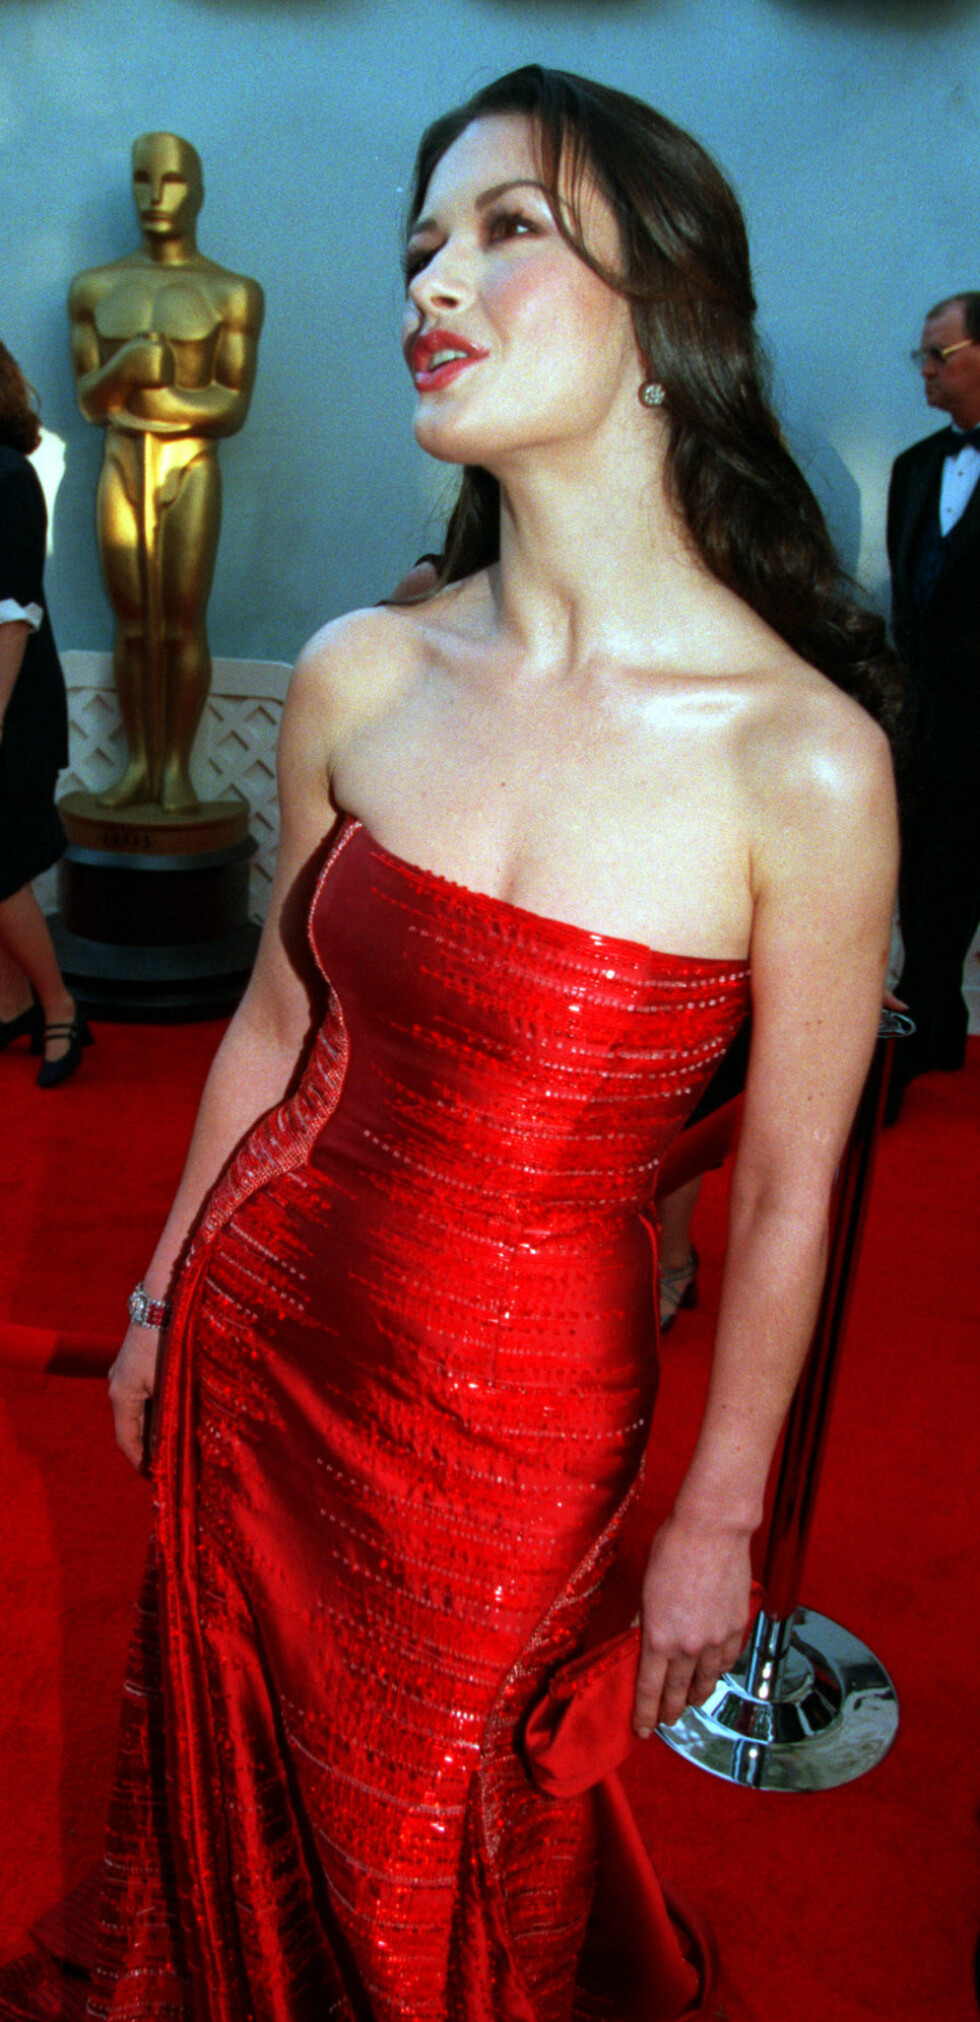 Catherine Zeta-Jones poserer for fotografene på Academy Awards i 1999. Foto: NTB Scanpix